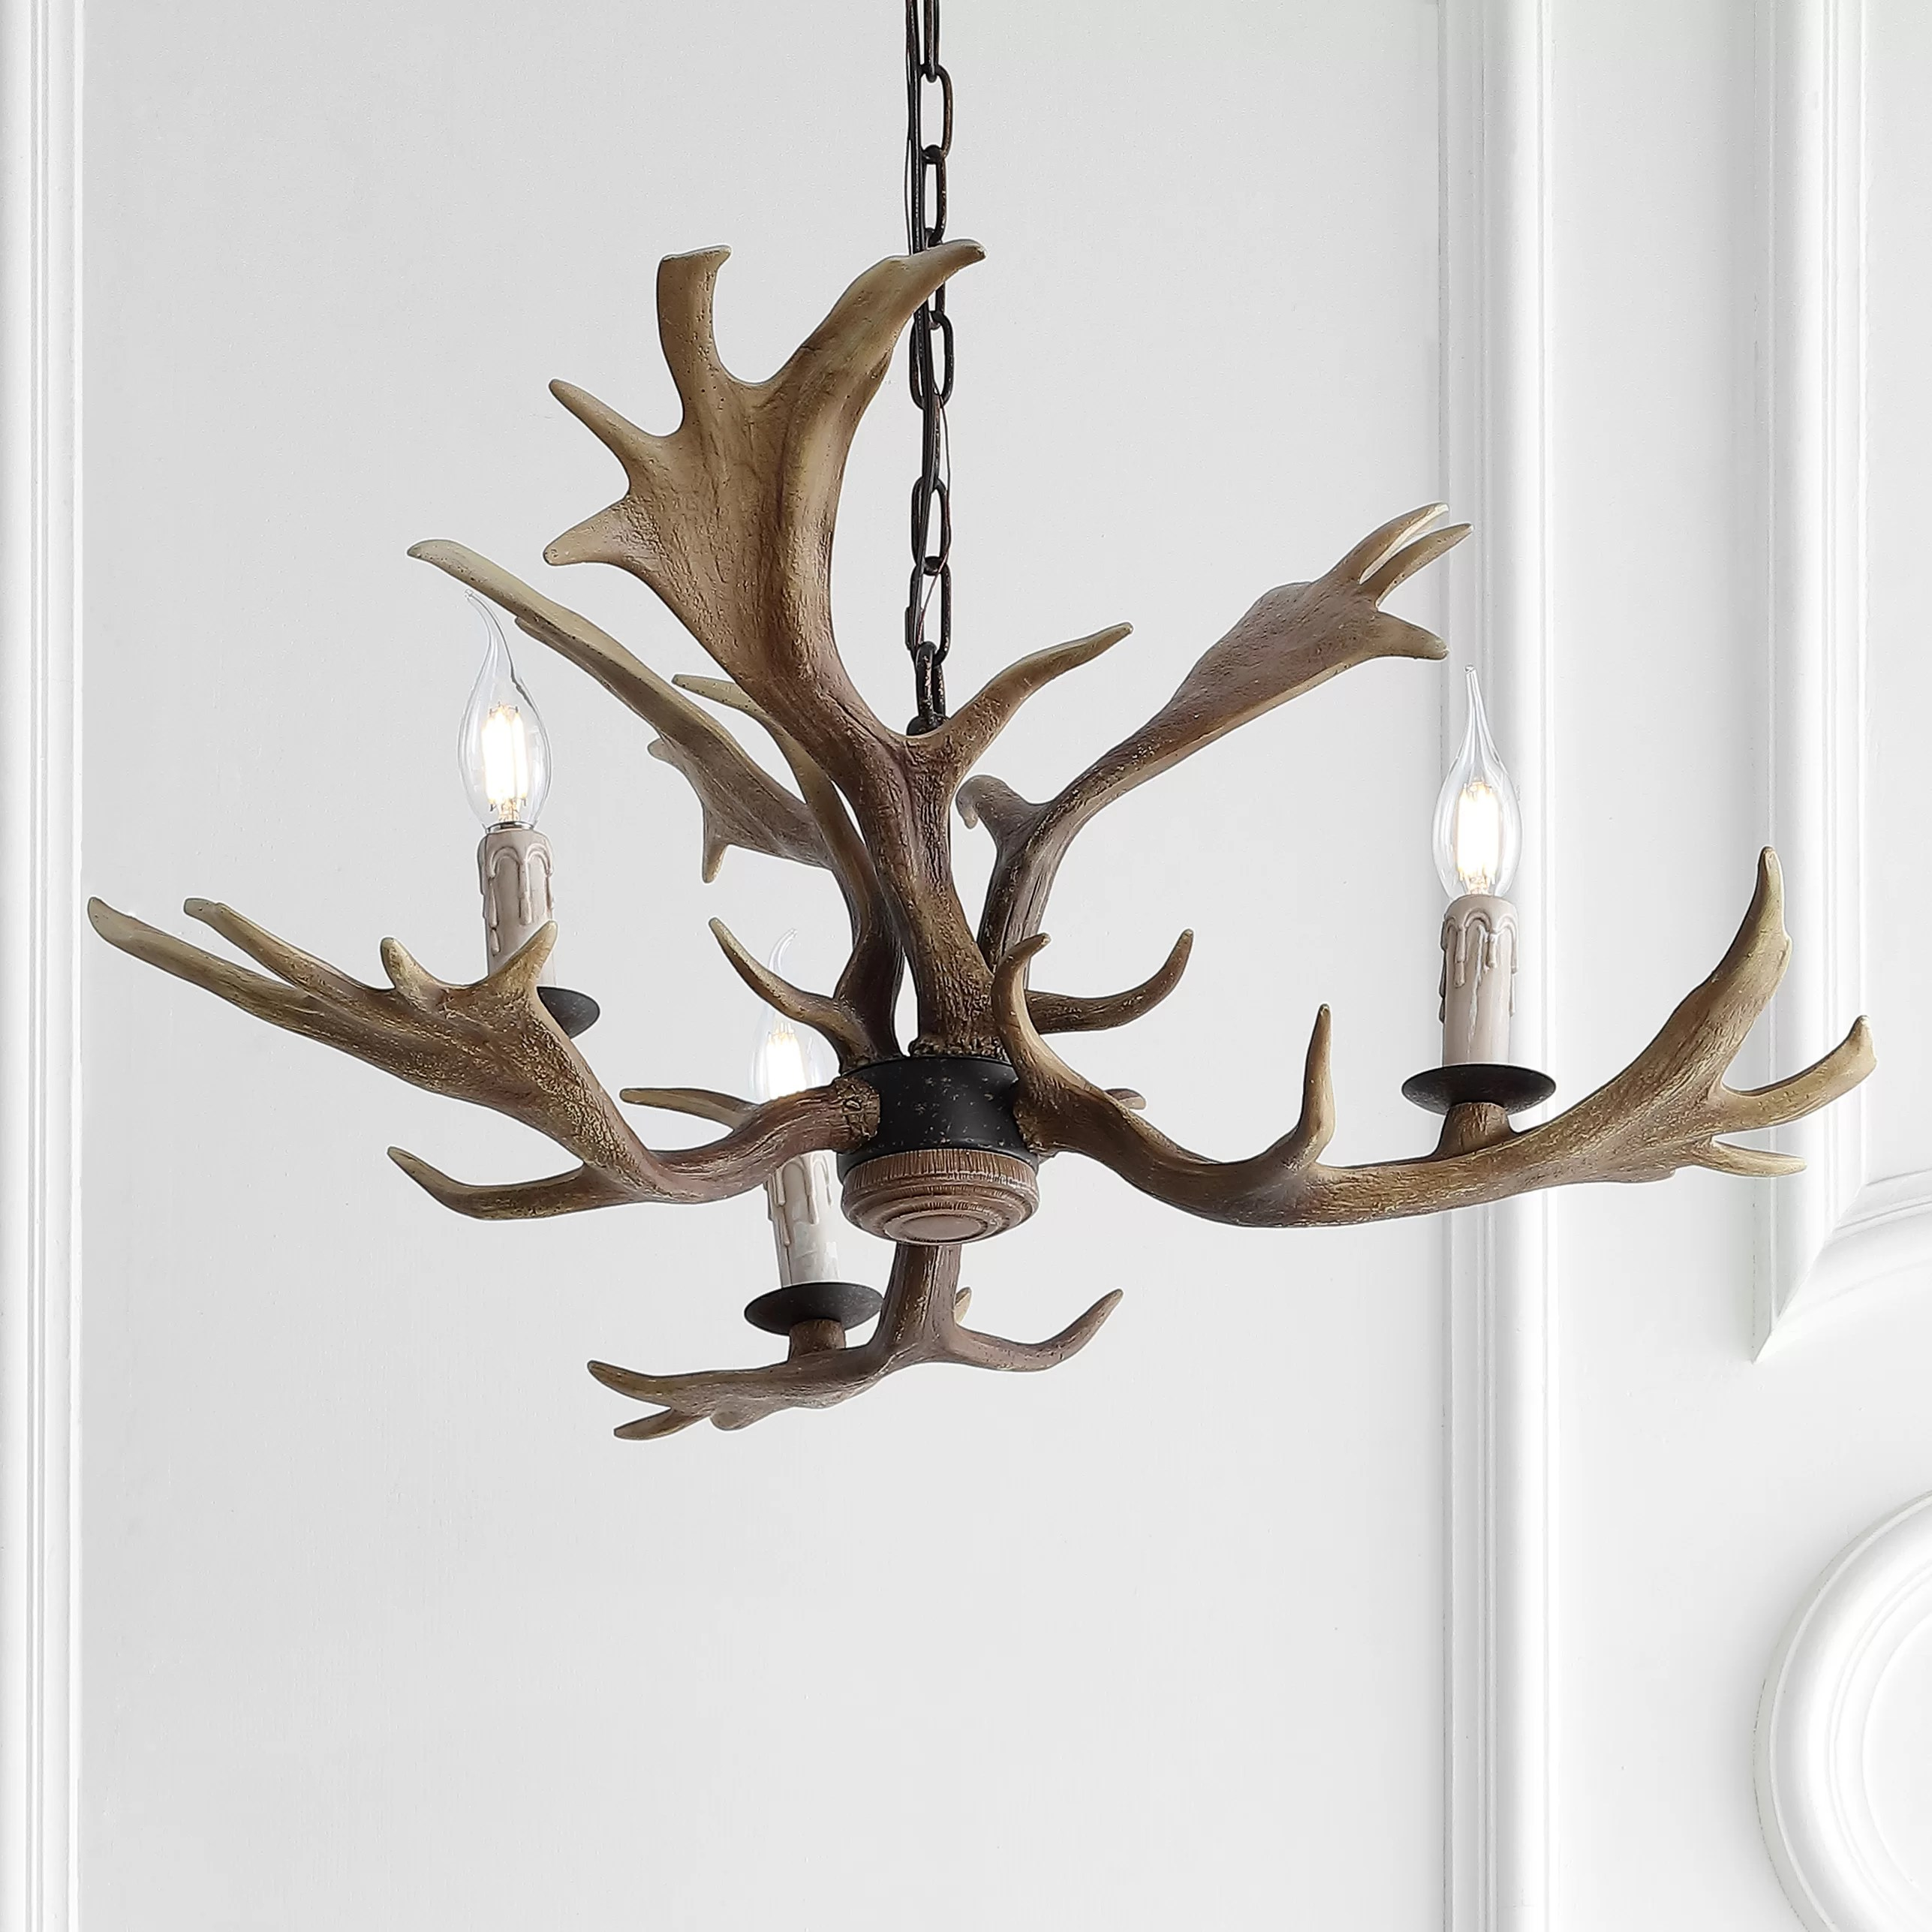 Lamp Repair Refurbishing 6 Resin Faux Antler Style Candelabra Candle Cover For Rustic Chandelier Fixture Medalex Rs